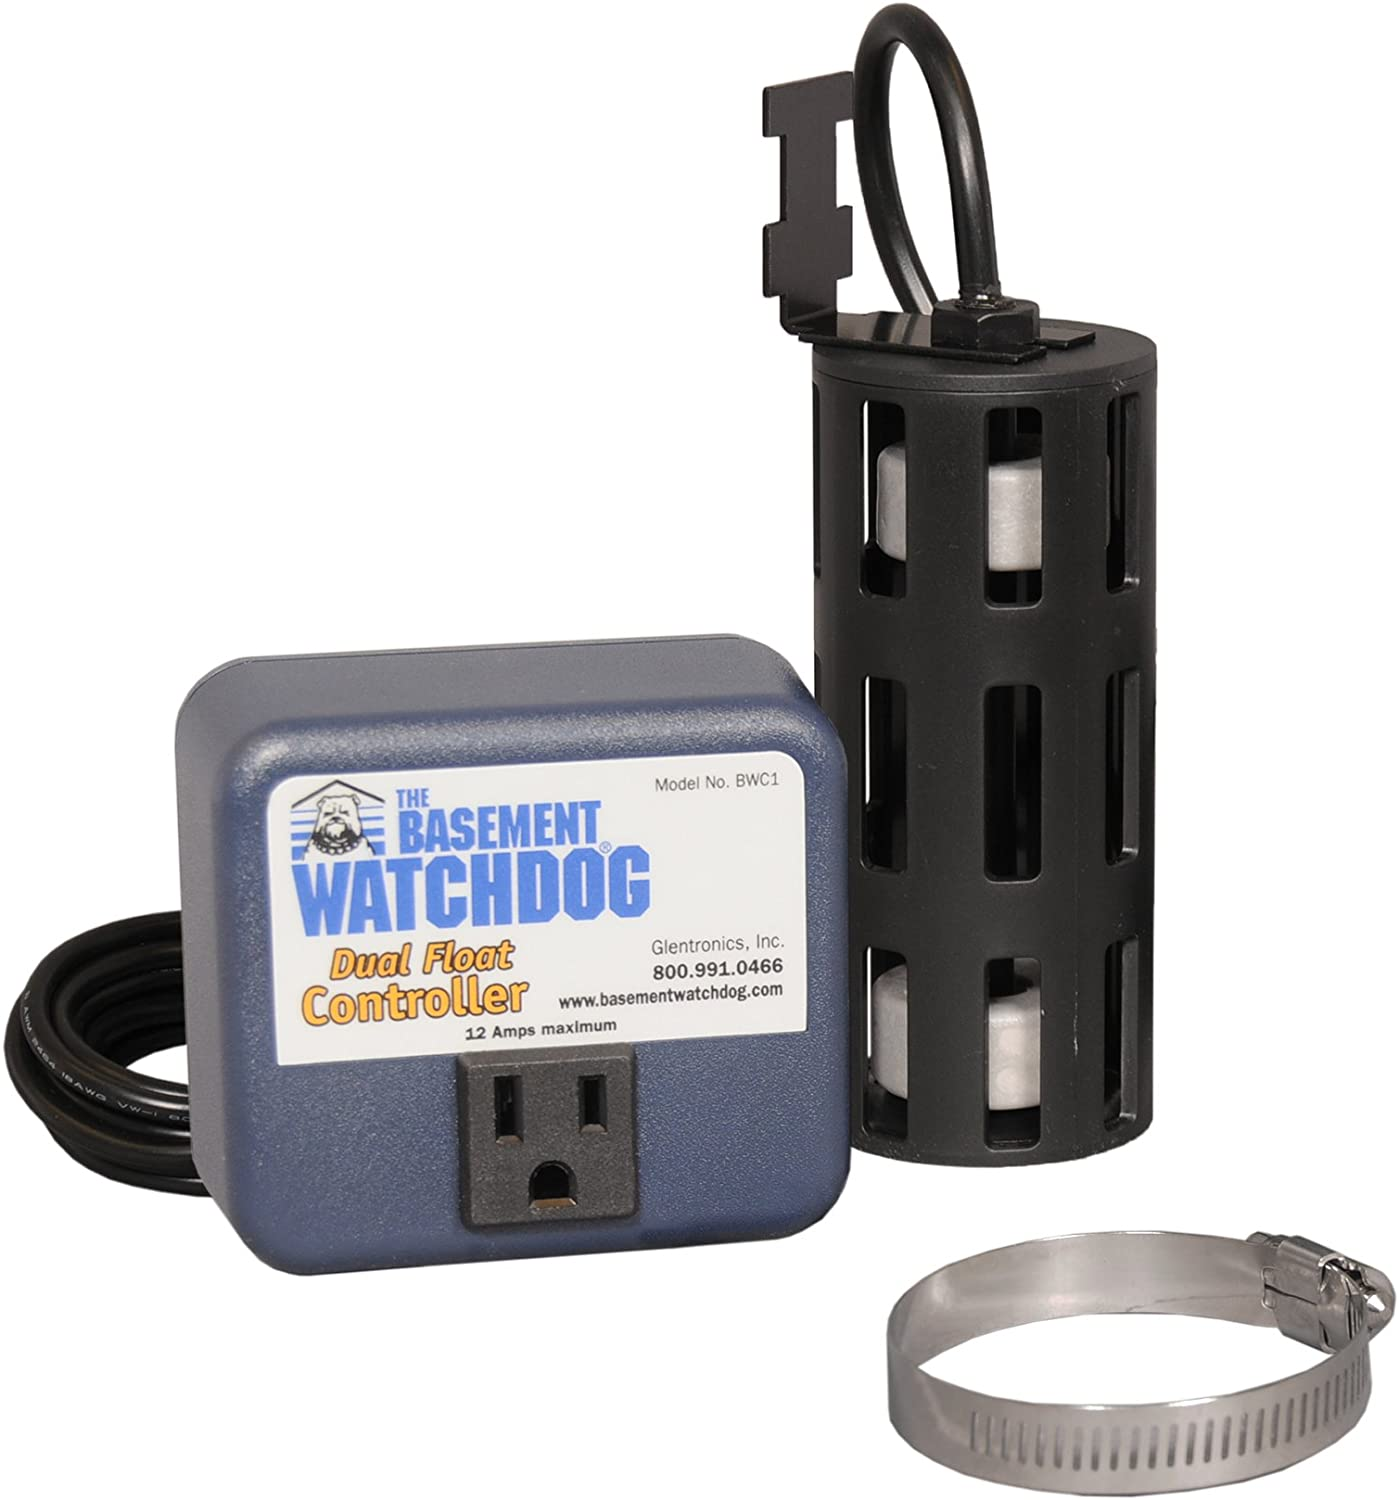 THE BASEMENT WATCHDOG Big Combo CONNECT Model CITS-50 1//2 HP Primary and Battery Backup Sump Pump System with Smart WiFi Capable and 24 Hour a Day Monitoring Controller